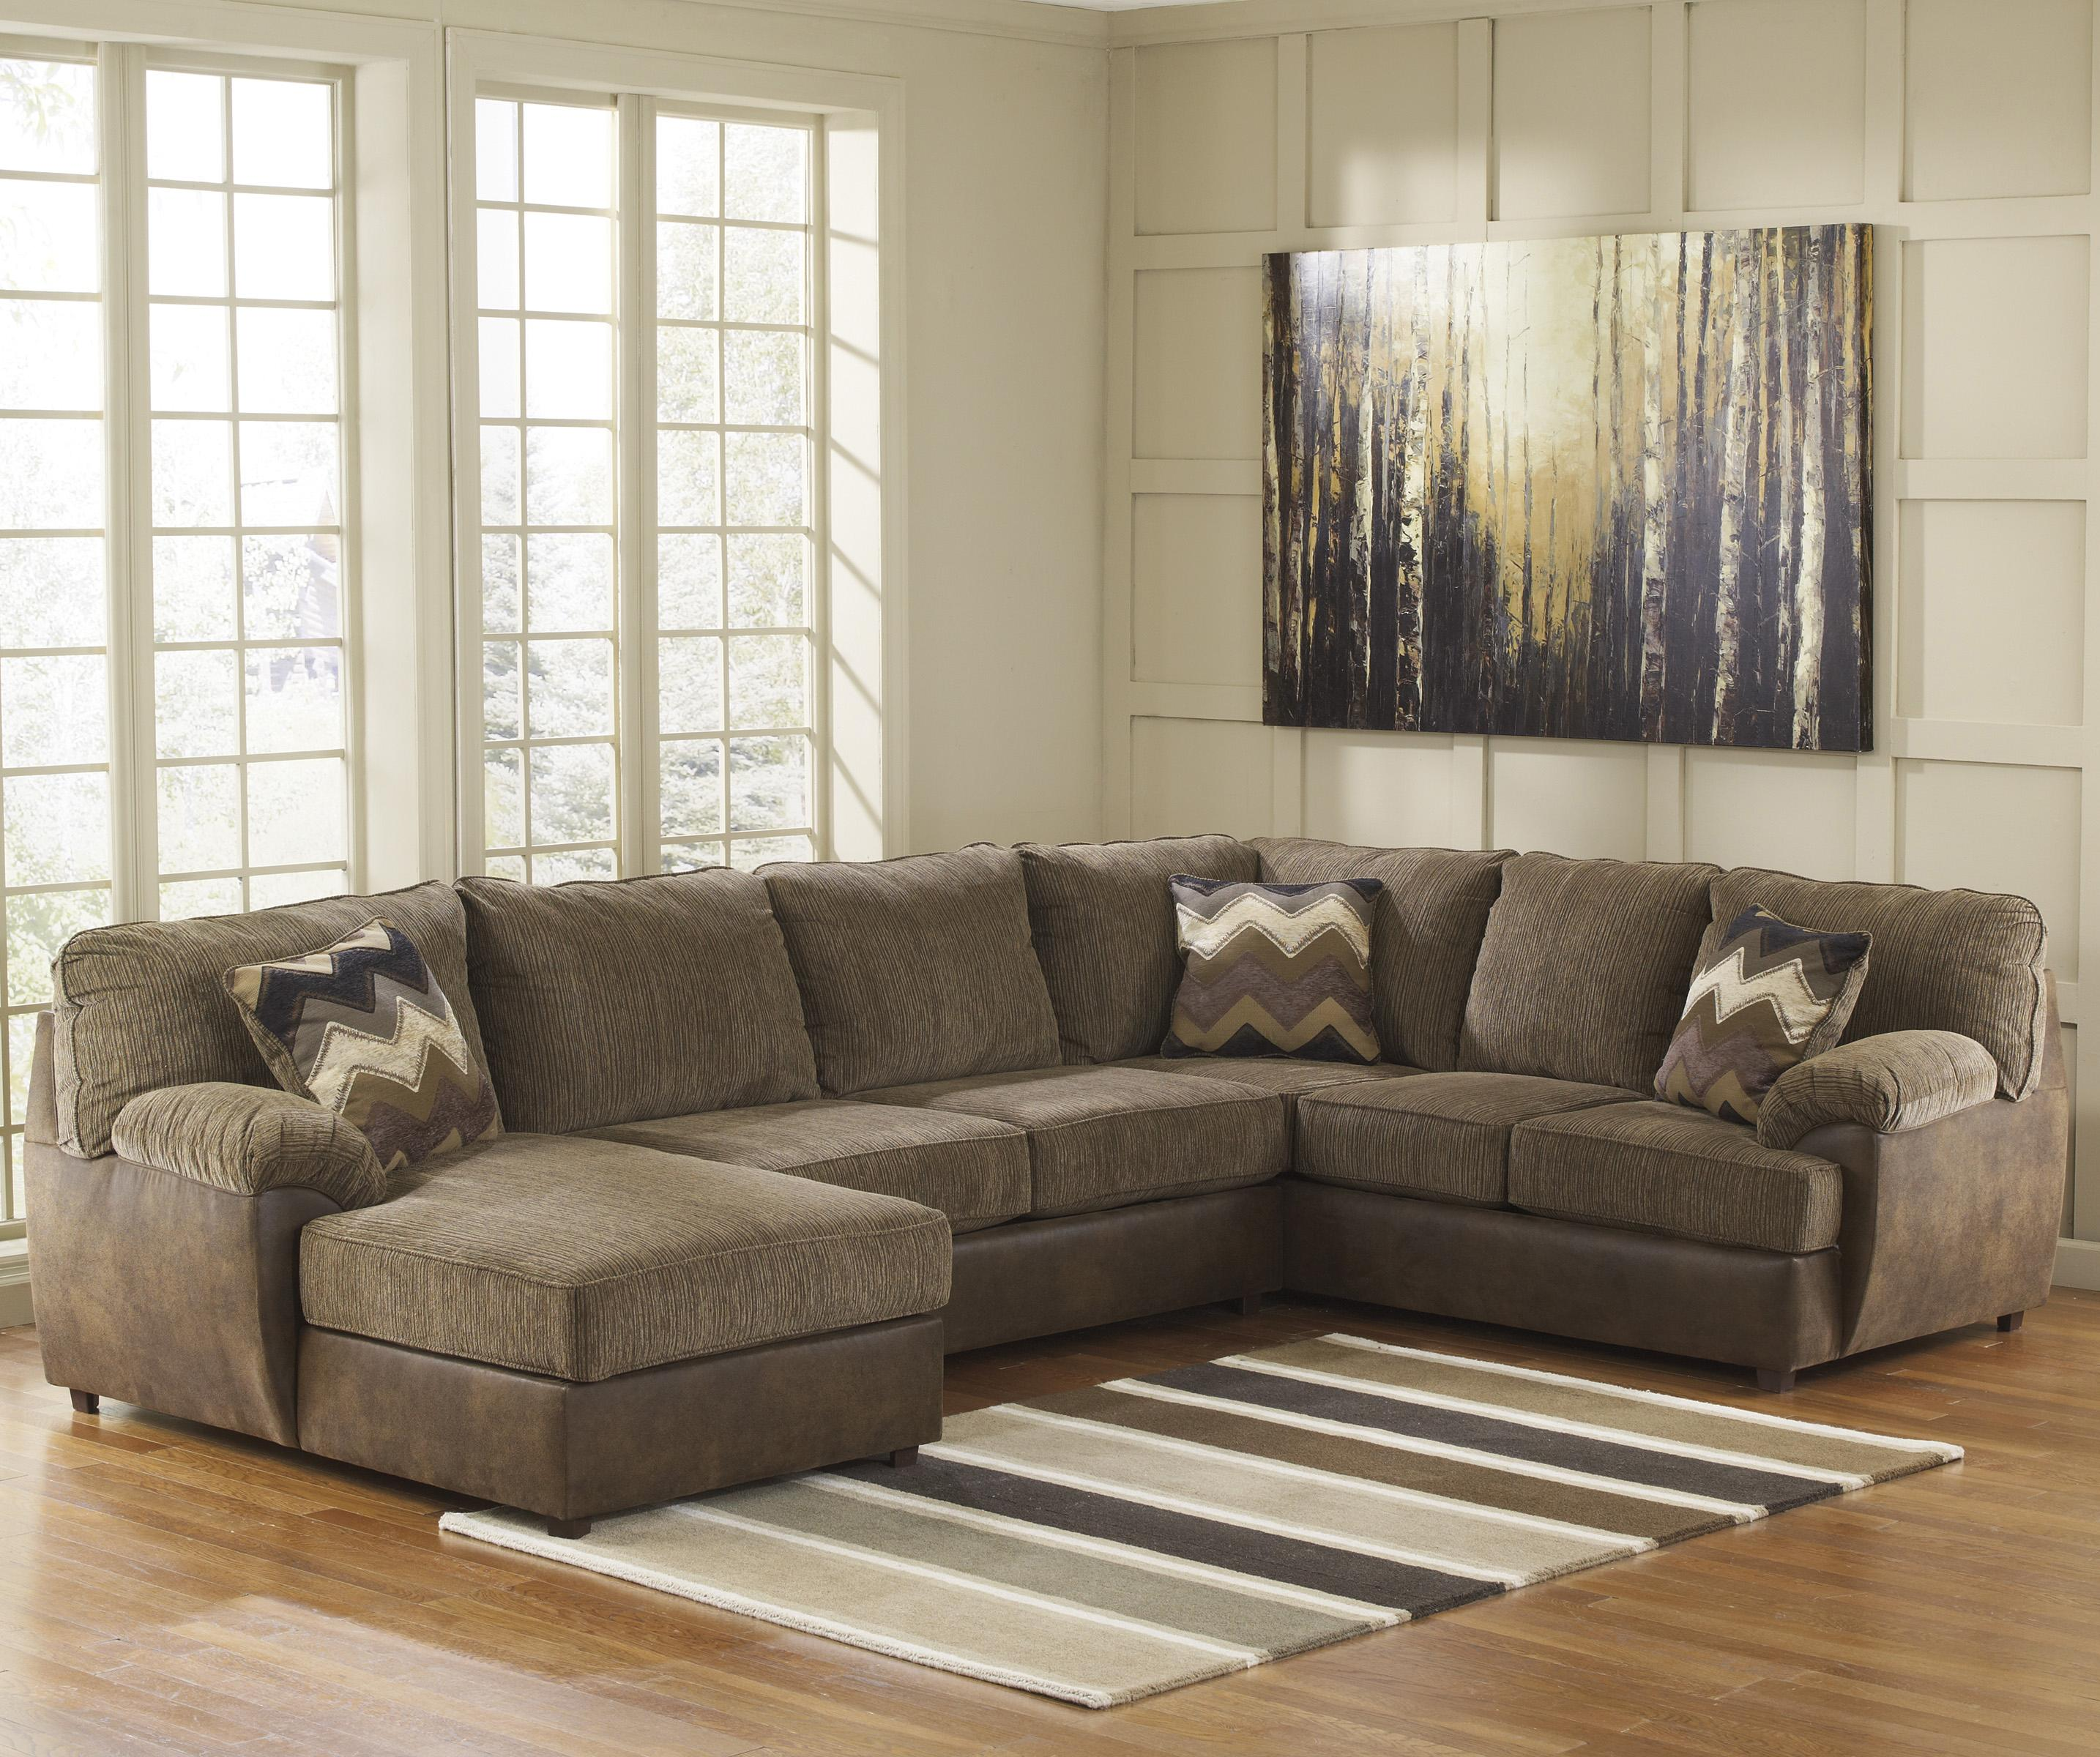 Benchcraft Cladio - Hickory 3-Piece Sectional with Left Chaise - Item Number: 2410016+34+67